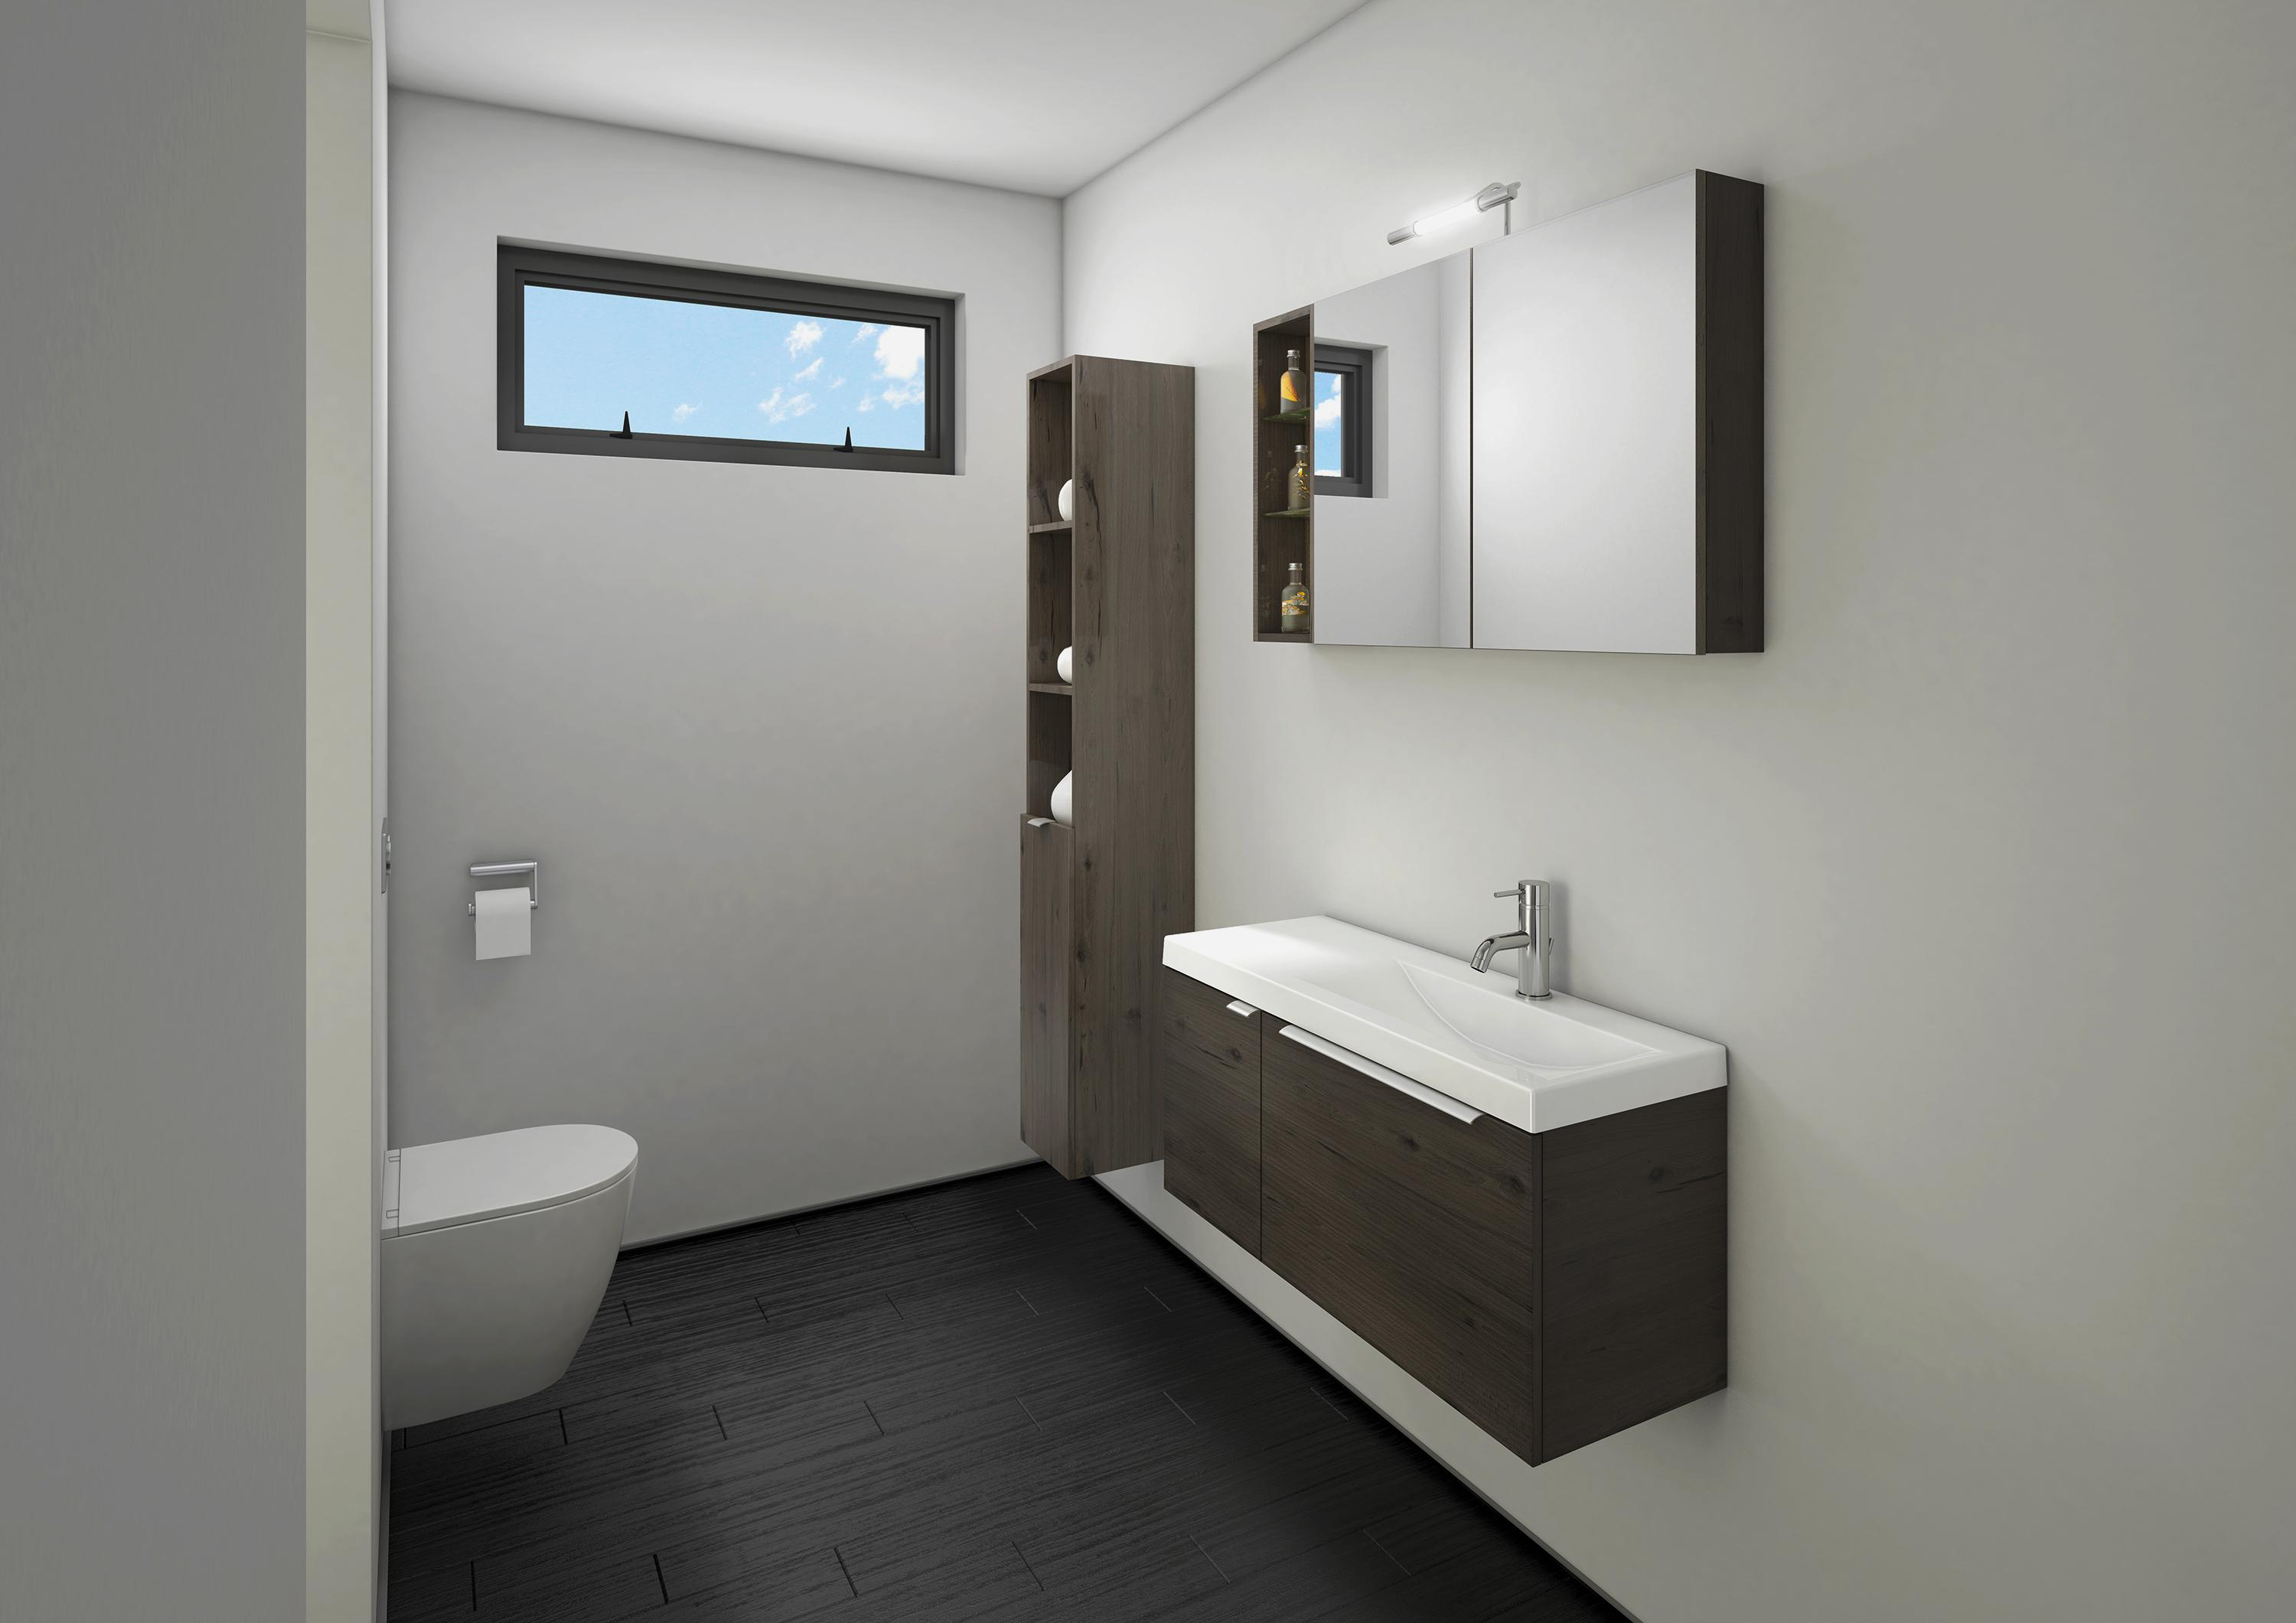 Narrow bathrooms by st michel nz for Small bathroom designs nz